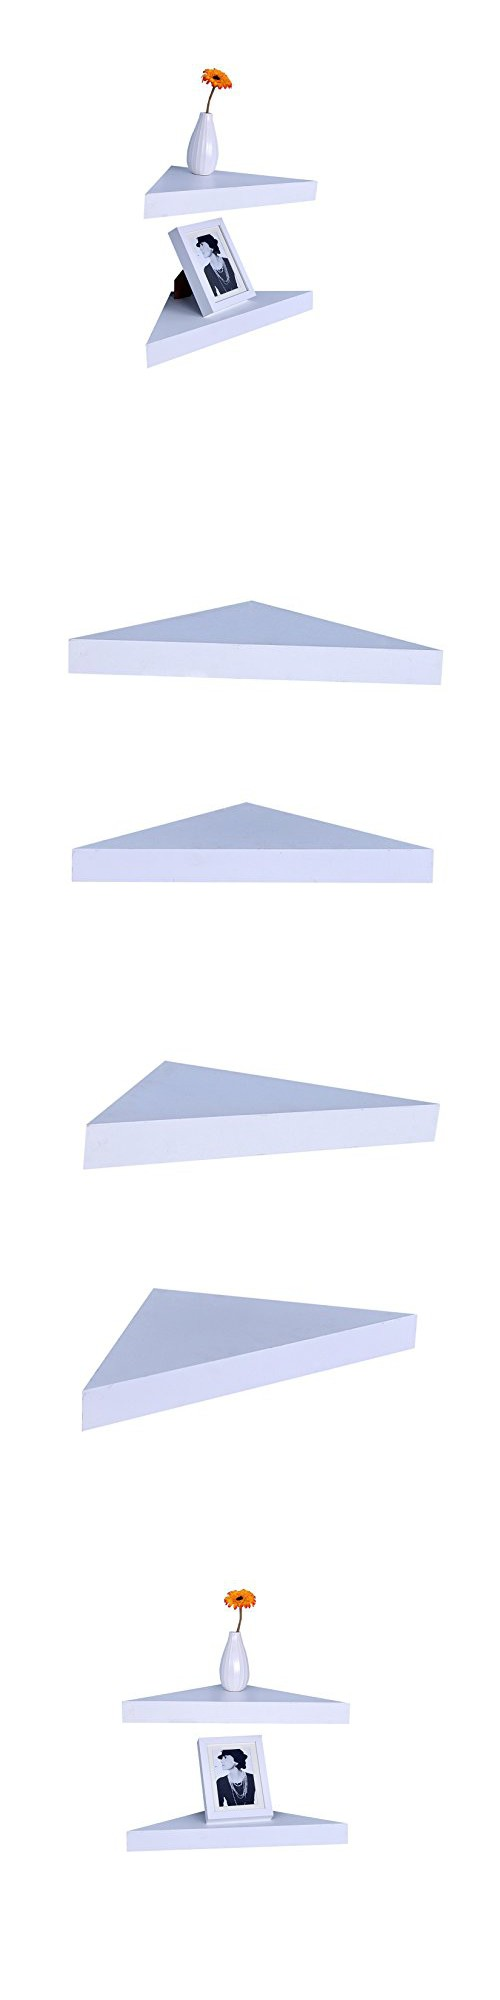 welland inch chicago floating corner shelf wall shelves display white new metal angle brackets storage ideas for bathroom vonhaus mount ikea ledge shelving coat rack and mounted